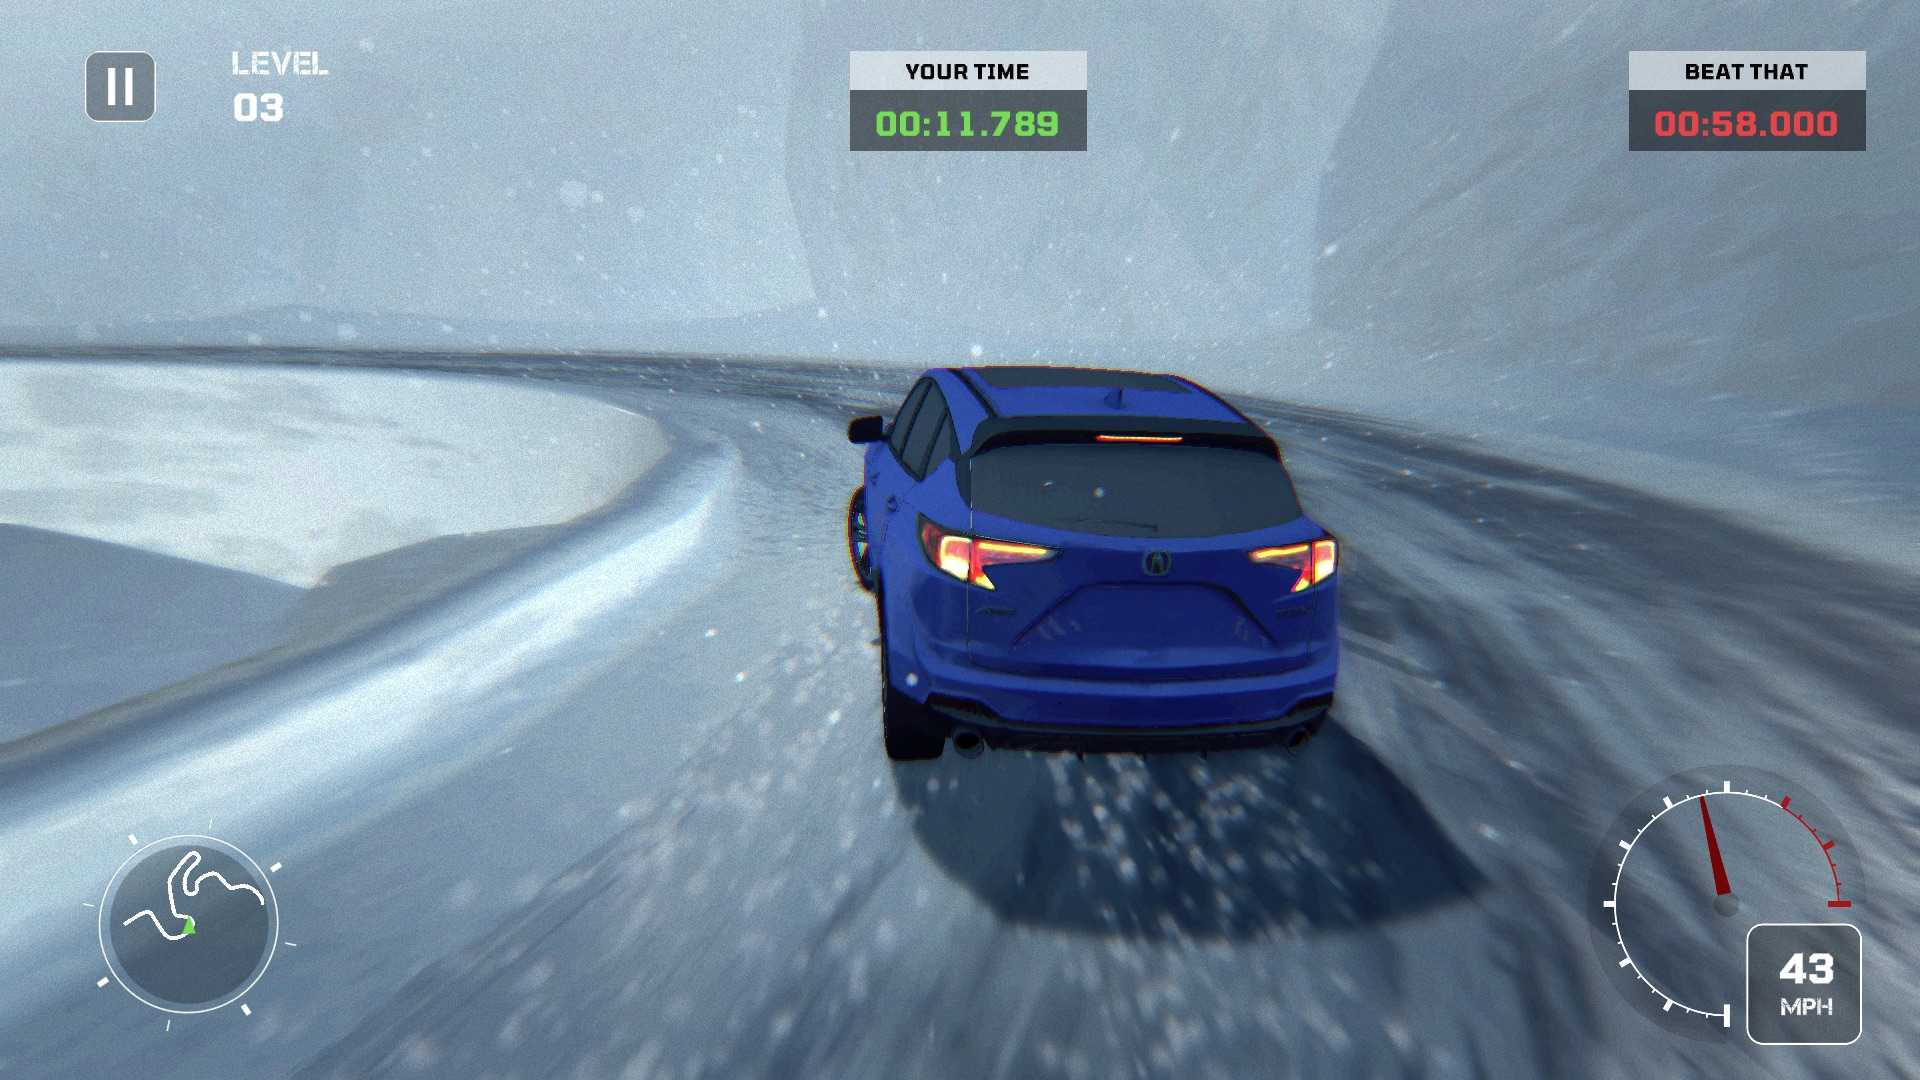 Image result for acura beat that game